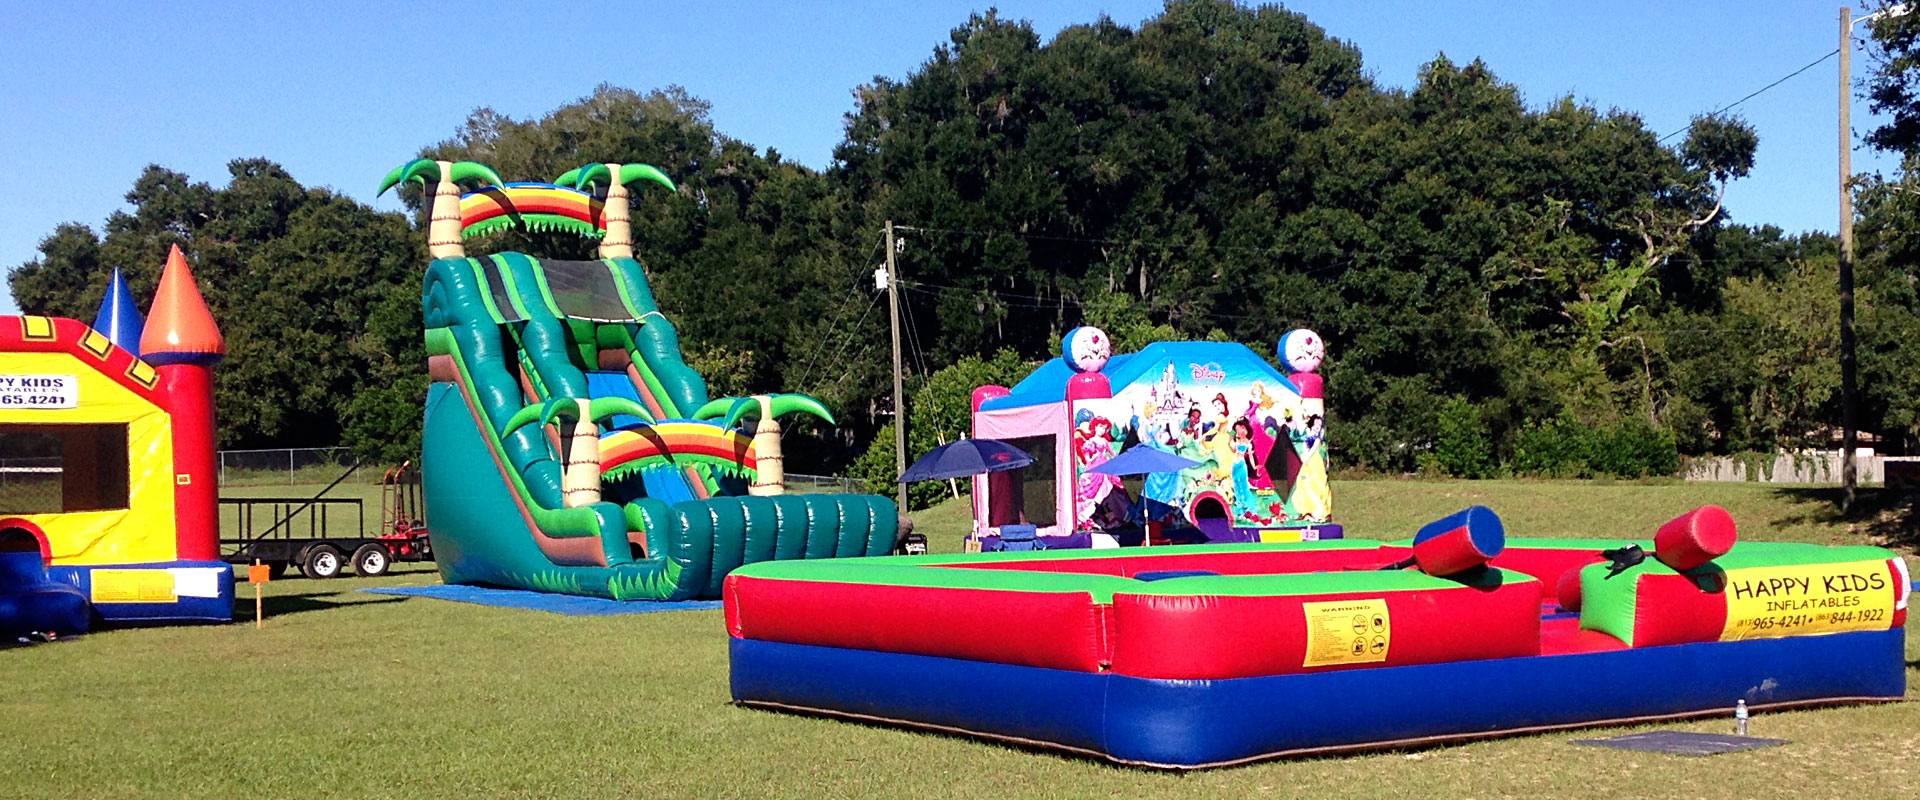 Inflatables galore!